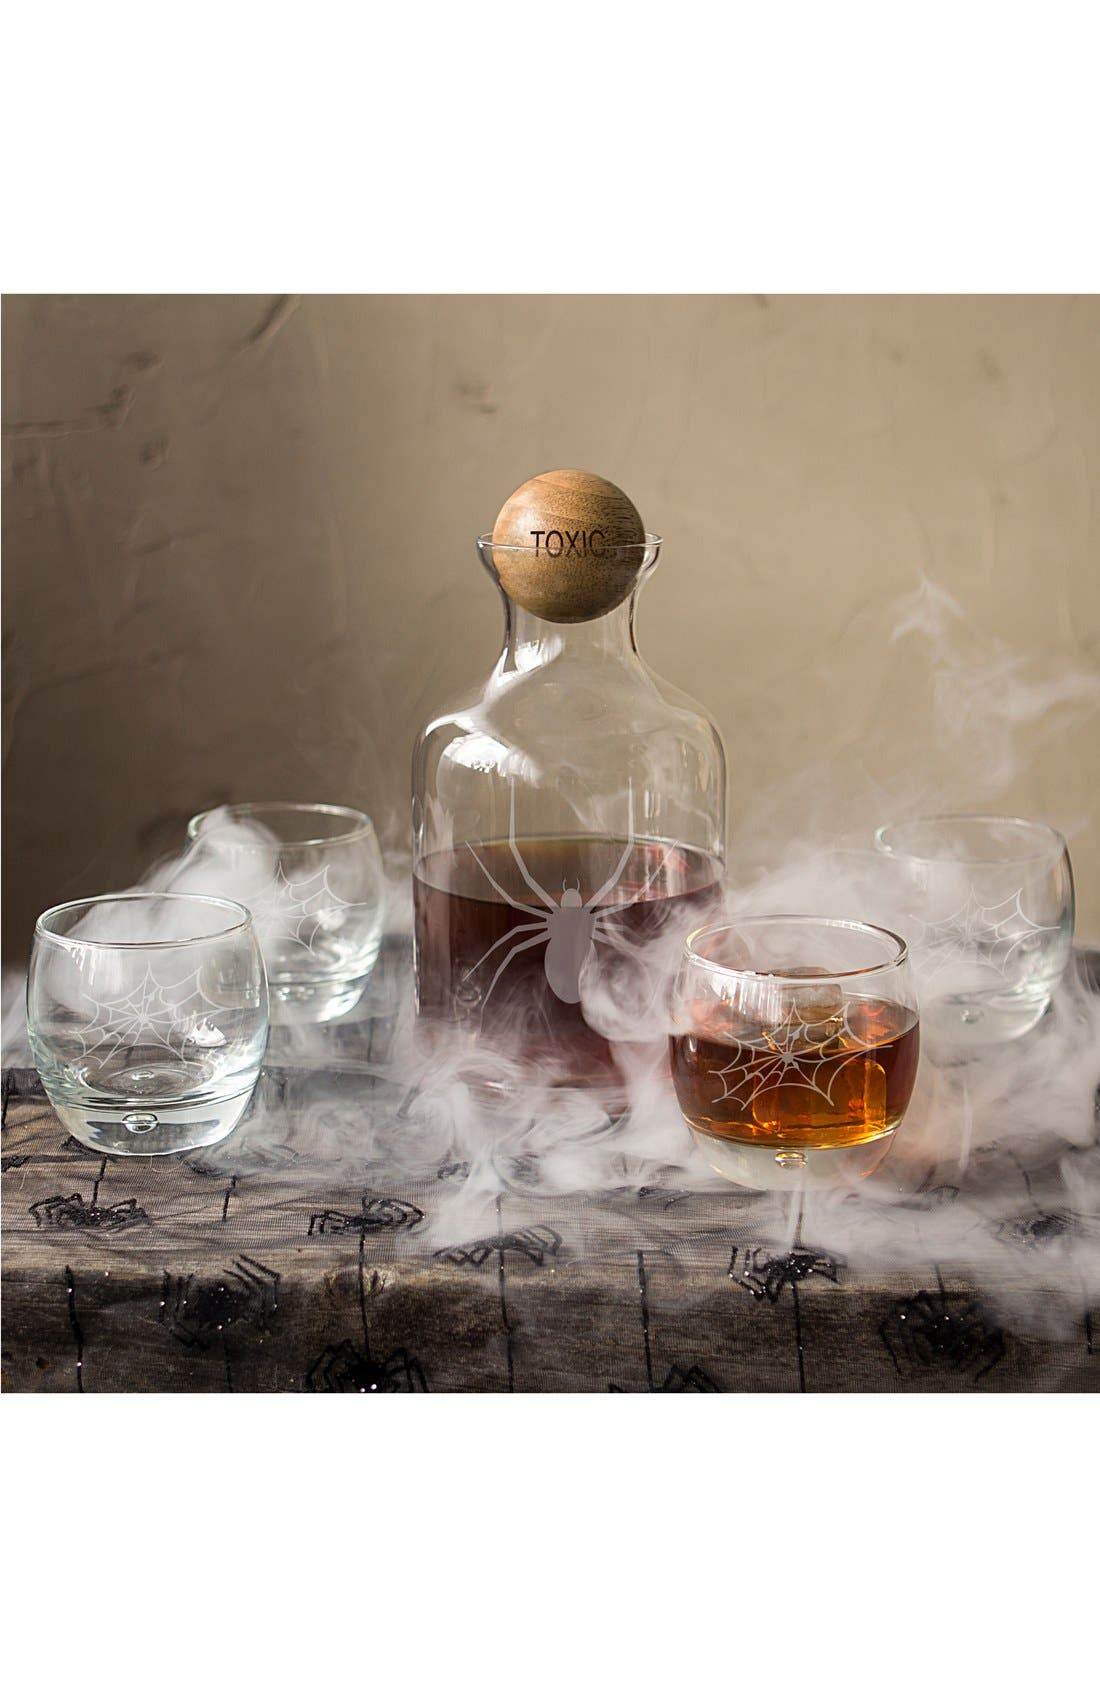 Main Image - Cathy's Concepts 'Toxic Spider' 6-Piece Glass Decanter Set